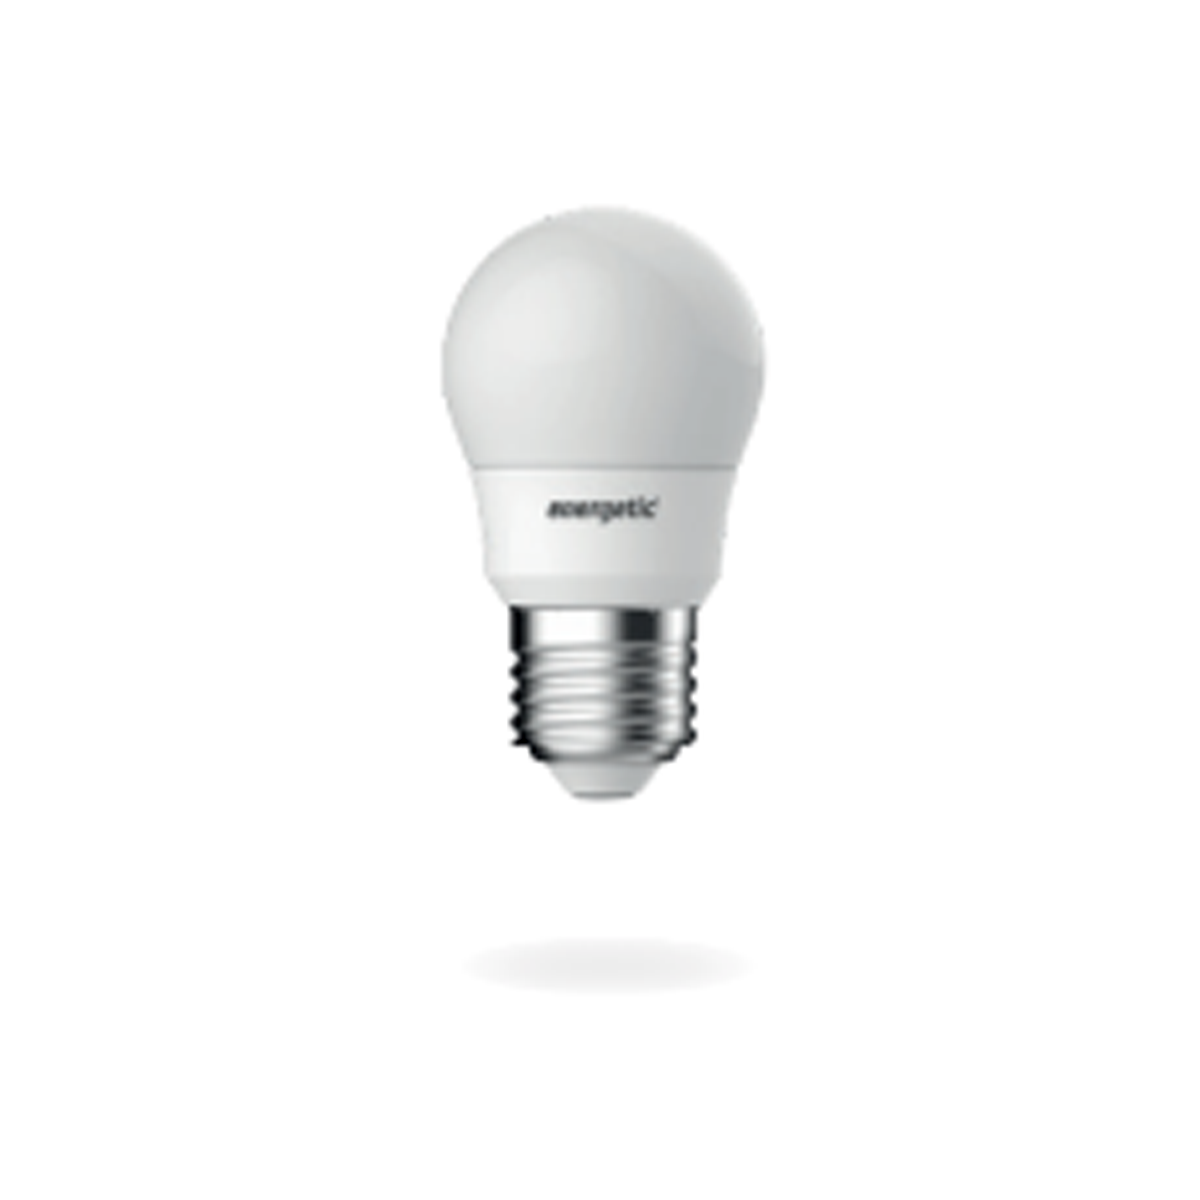 Energetic E27 Globe Non Dimmable Soft Warm White 5.9W